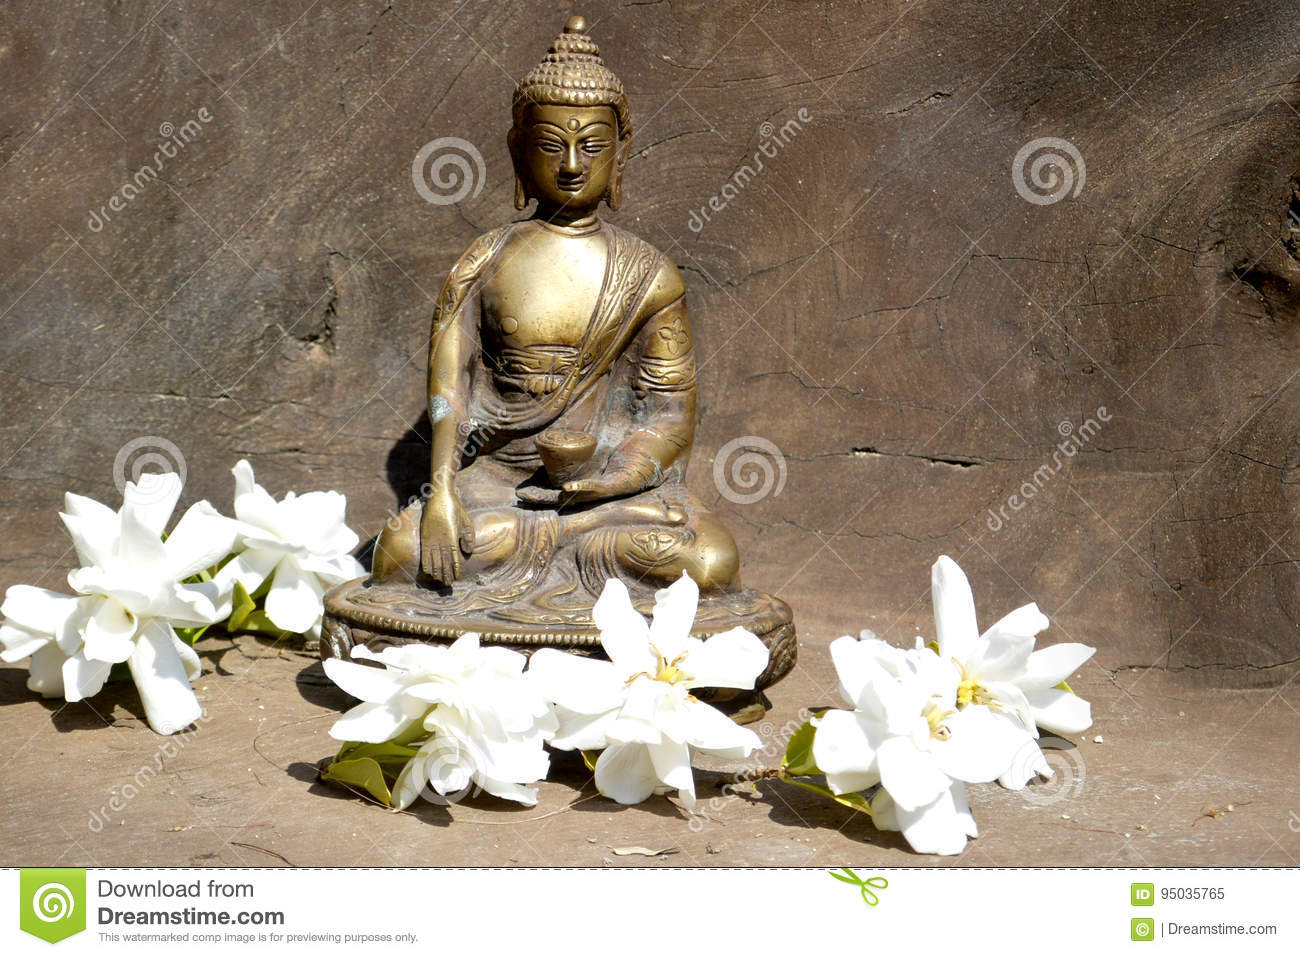 Bronze statue of Touching earth Buddha on wood with white flowers